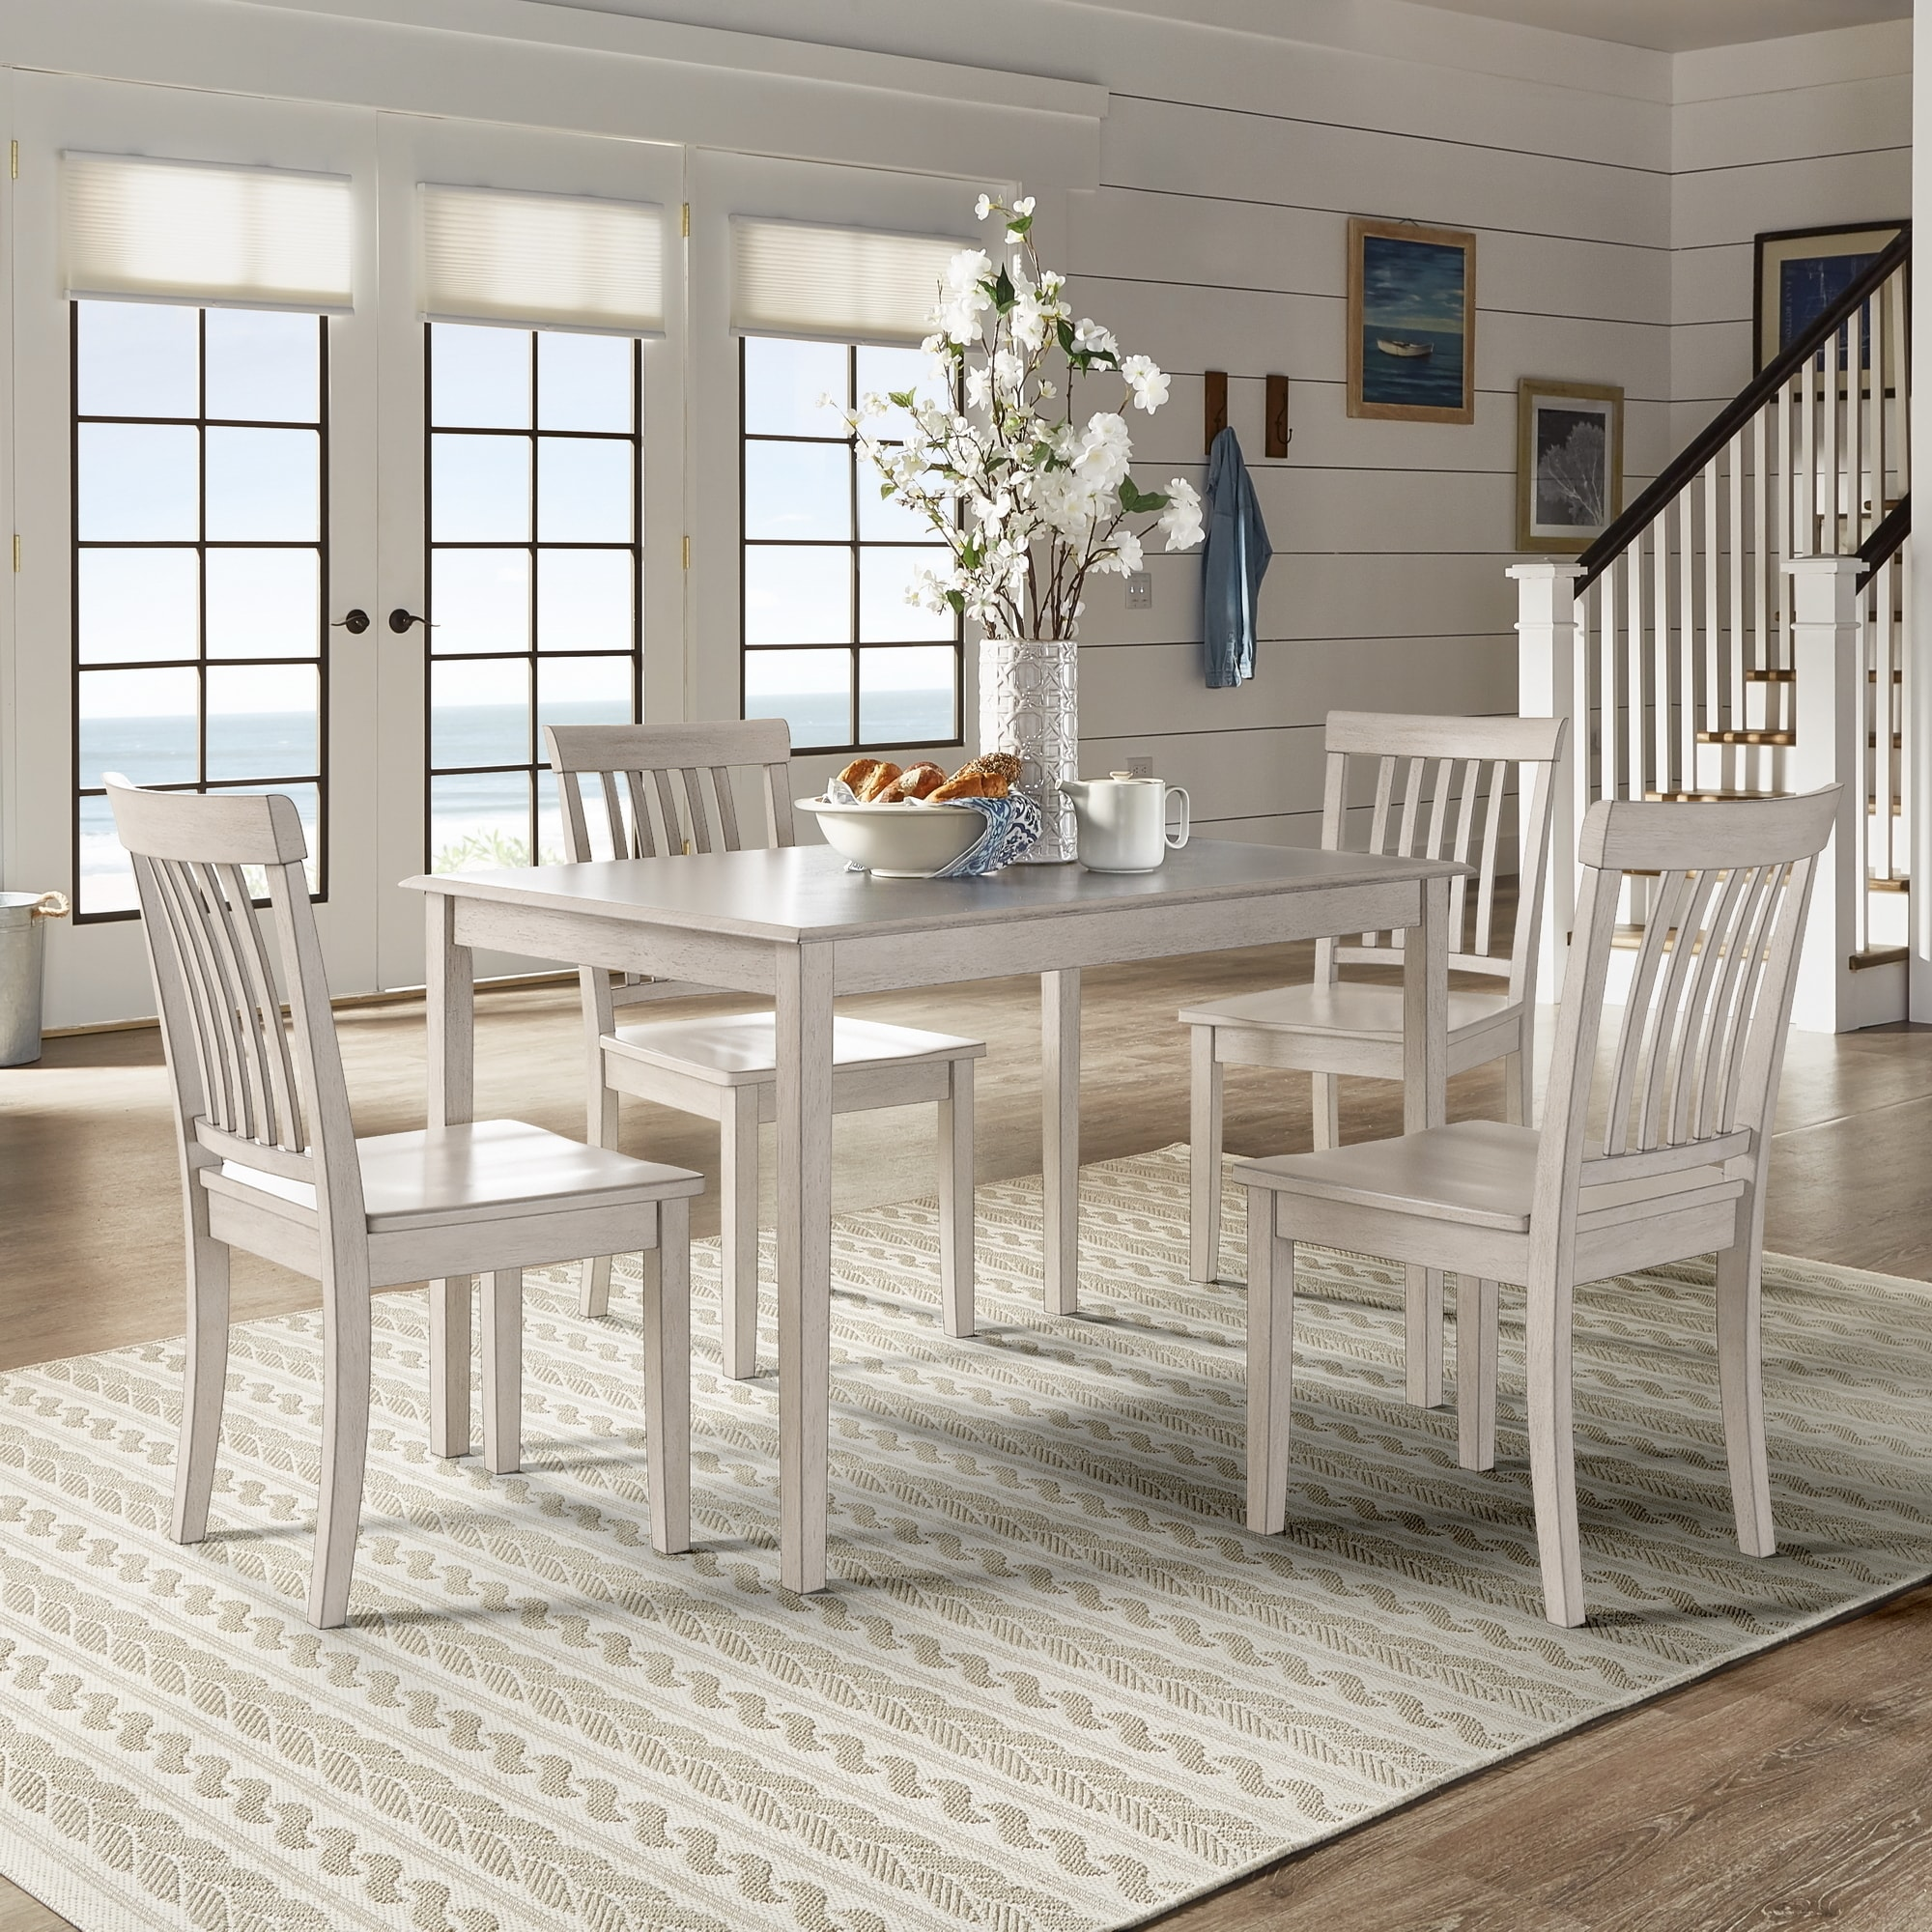 Inspire Q Wilmington Ii 48 Inch Rectangular Antique White 5 Piece Dining Set By Classic Walmart Com Walmart Com